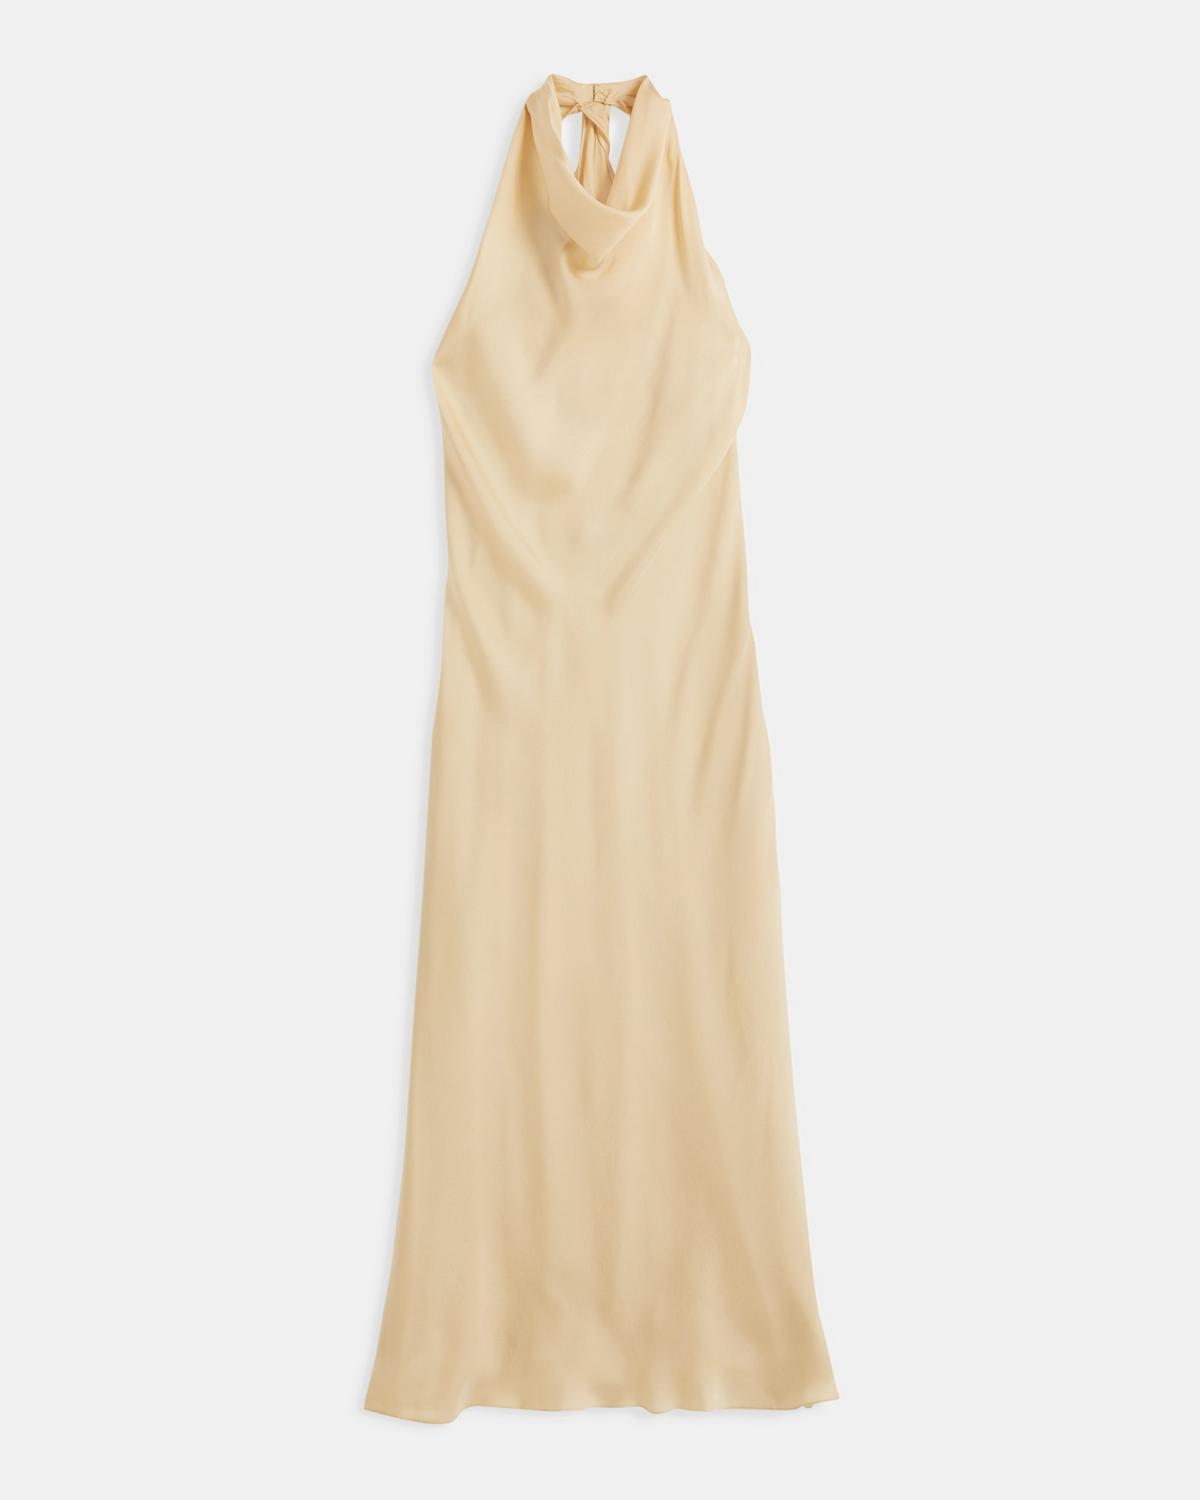 Easy Twist Dress in Silk Charmeuse